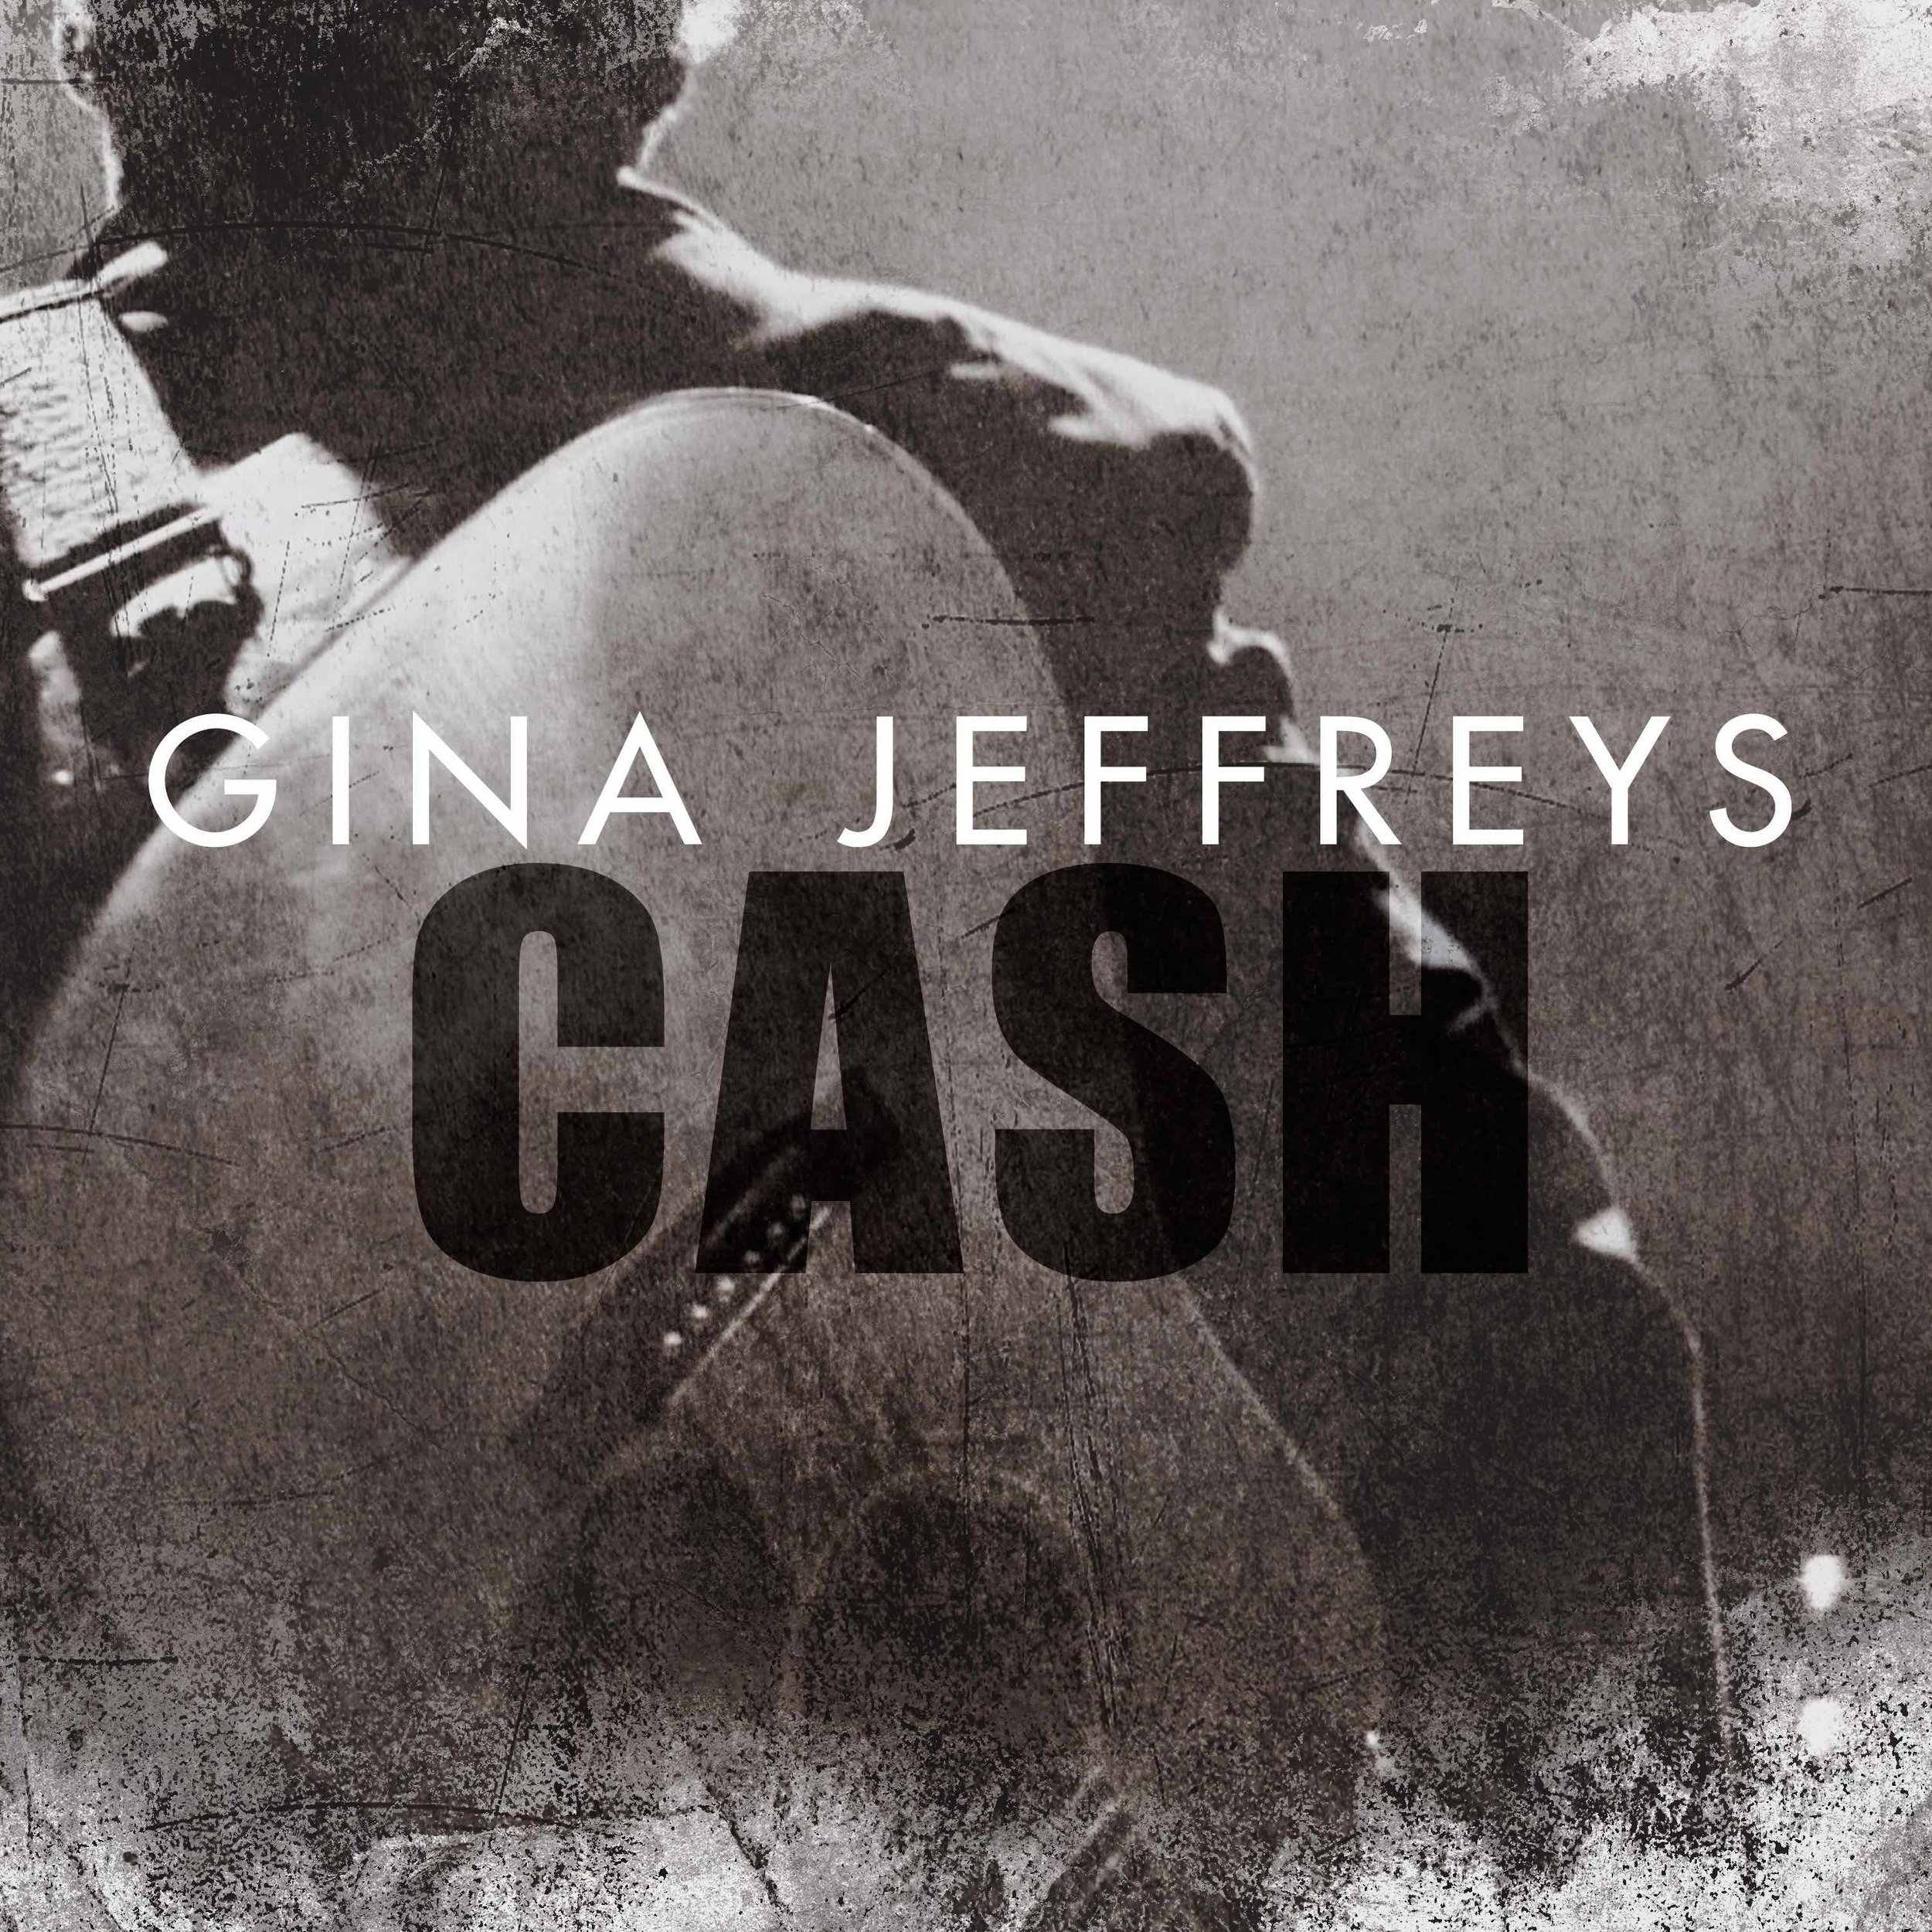 """ANNOUNCING NEW SINGLE!!'CASH' RELEASED JUNE 21 - Gina Jeffreys returns to centre stage with her new single 'CASH' following a 12-year break from releasing new music to raise her family. 'CASH' and its accompanying video are released ahead of the 'Beautiful Tangle' album release on August 9, and will be followed by the 'Beautiful Tangle' tour beginning on August 10.The inspiration for 'CASH' comes from Gina's career-launching tour in 1994 as the support act for the legendary Johnny Cash. It was a time that changed Gina's career from singing to five people a night in a dimly lit Sydney wine bar, to opening for Johnny Cash in front of 15,000 people a night!Gina said, """"I still pinch myself that it was real. I learnt more by standing at the side of the stage watching him than any school could ever teach. I have been throwing this idea around for years because I really wanted to try and to capture my gratitude for this opportunity.""""'CASH' is taken from Gina's forthcoming 'Beautiful Tangle' album – a stunning collection of personal stories that come straight from the heart. Her first album of original songs since the release of 'Walks of Life' in 2007, 'Beautiful Tangle' showcases the rich and distinctive voice that has won over the country music audience since Gina's award winning career began nearly 30 years ago."""